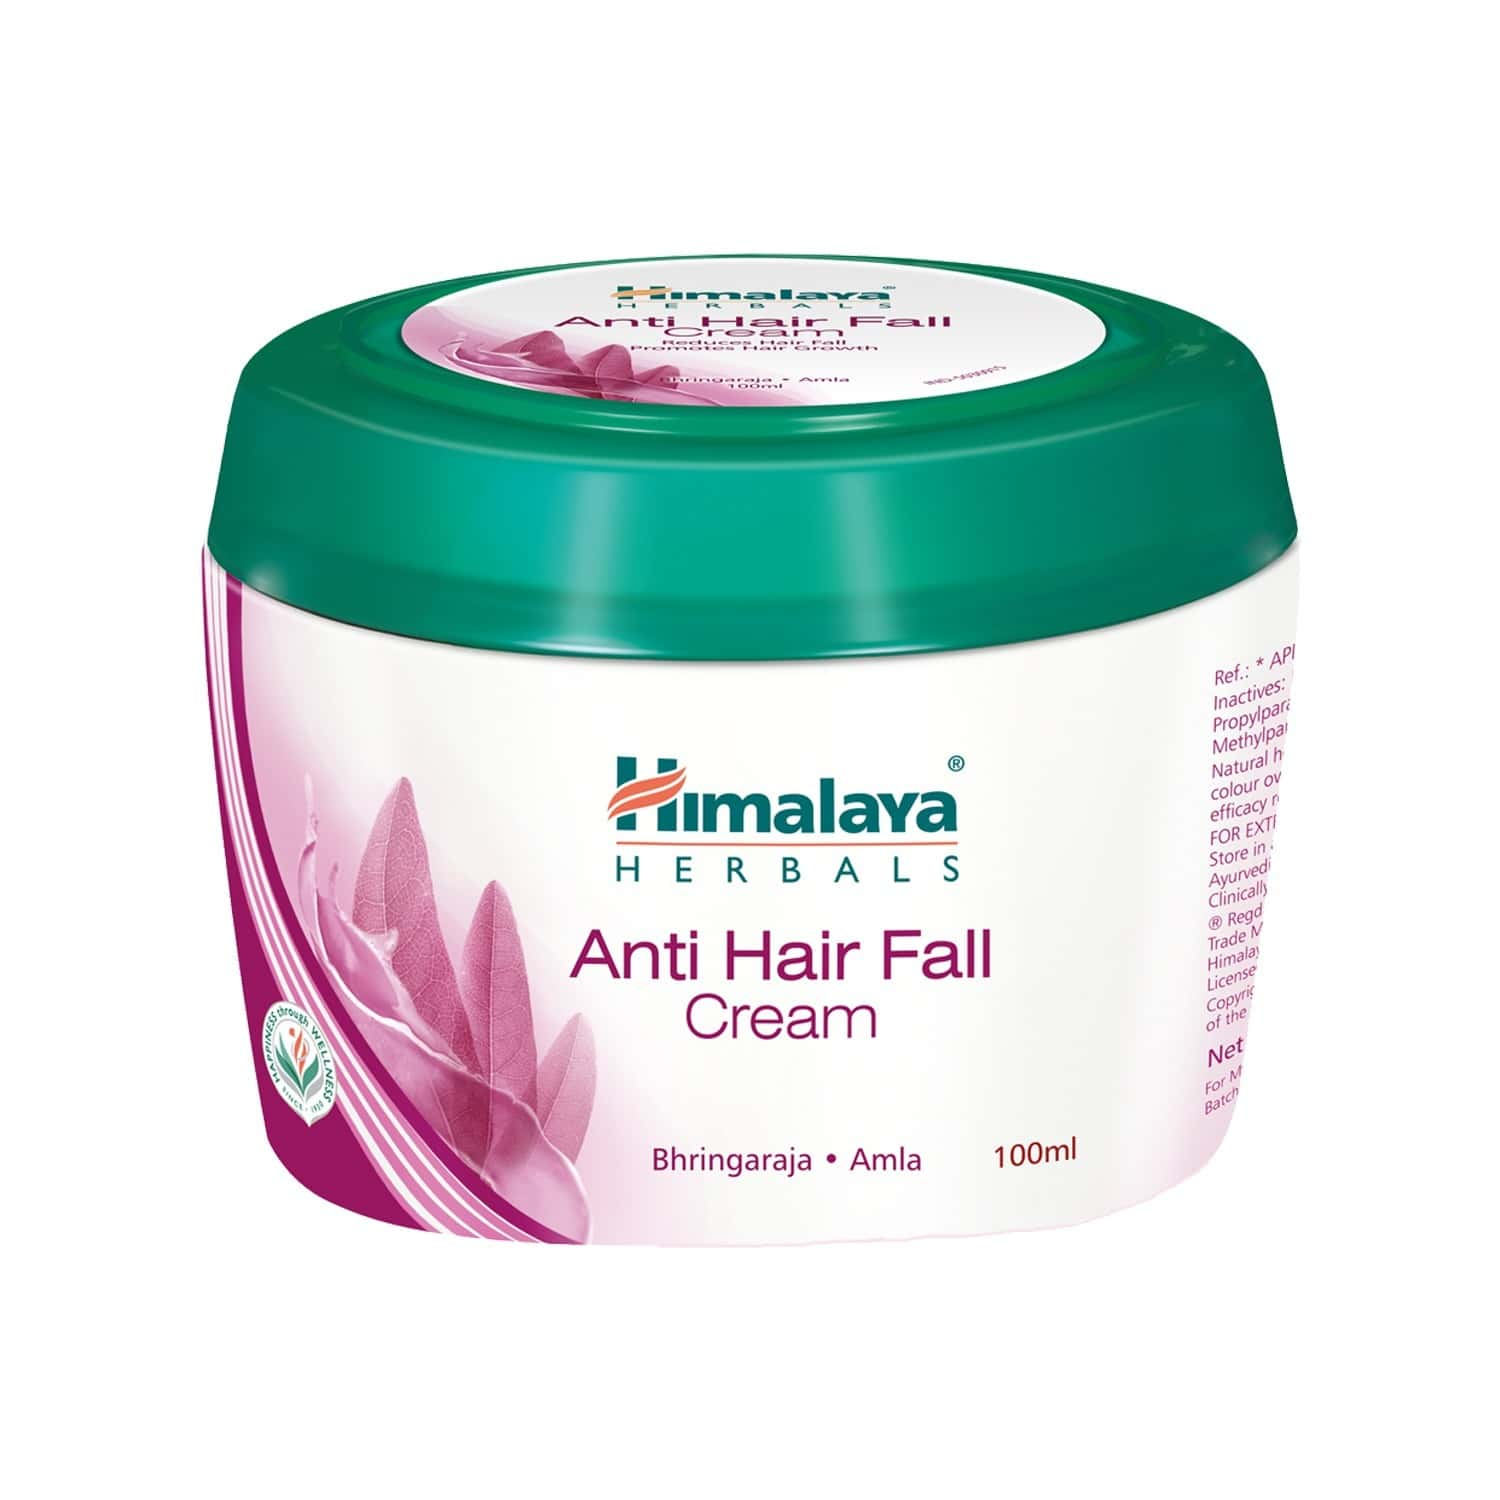 Himalaya Anti-hair Fall Cream 100ml